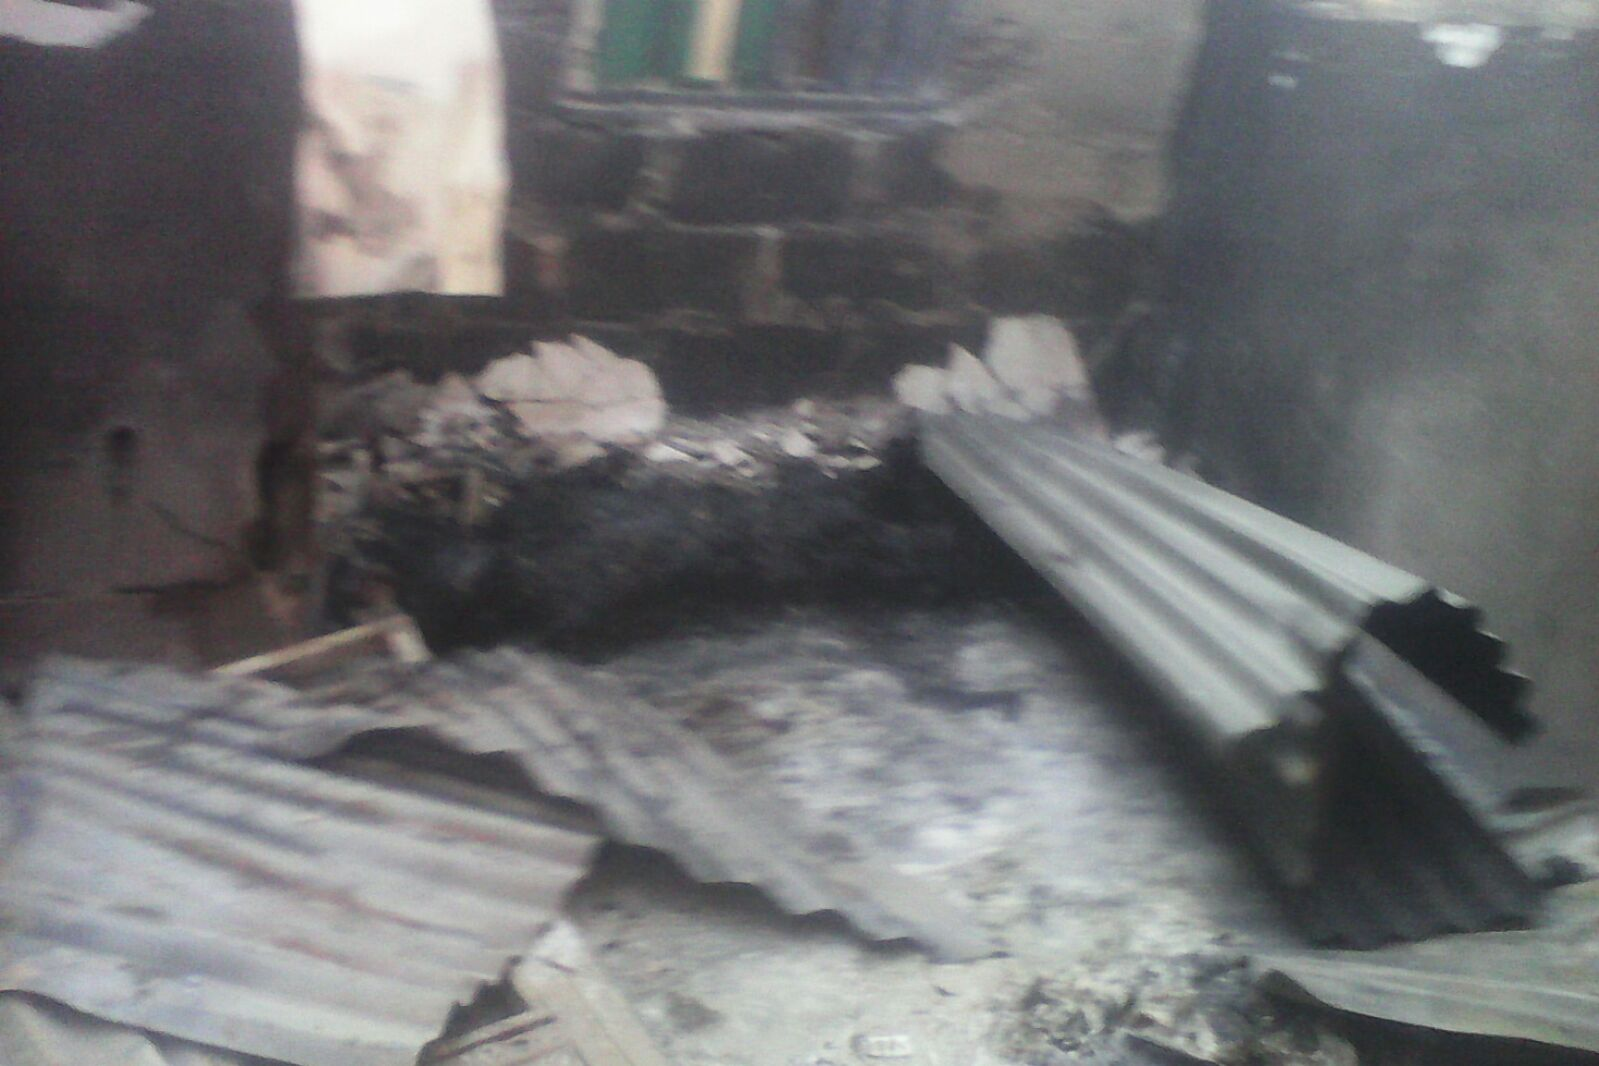 Images from Attack: House where people were locked in and burned to death